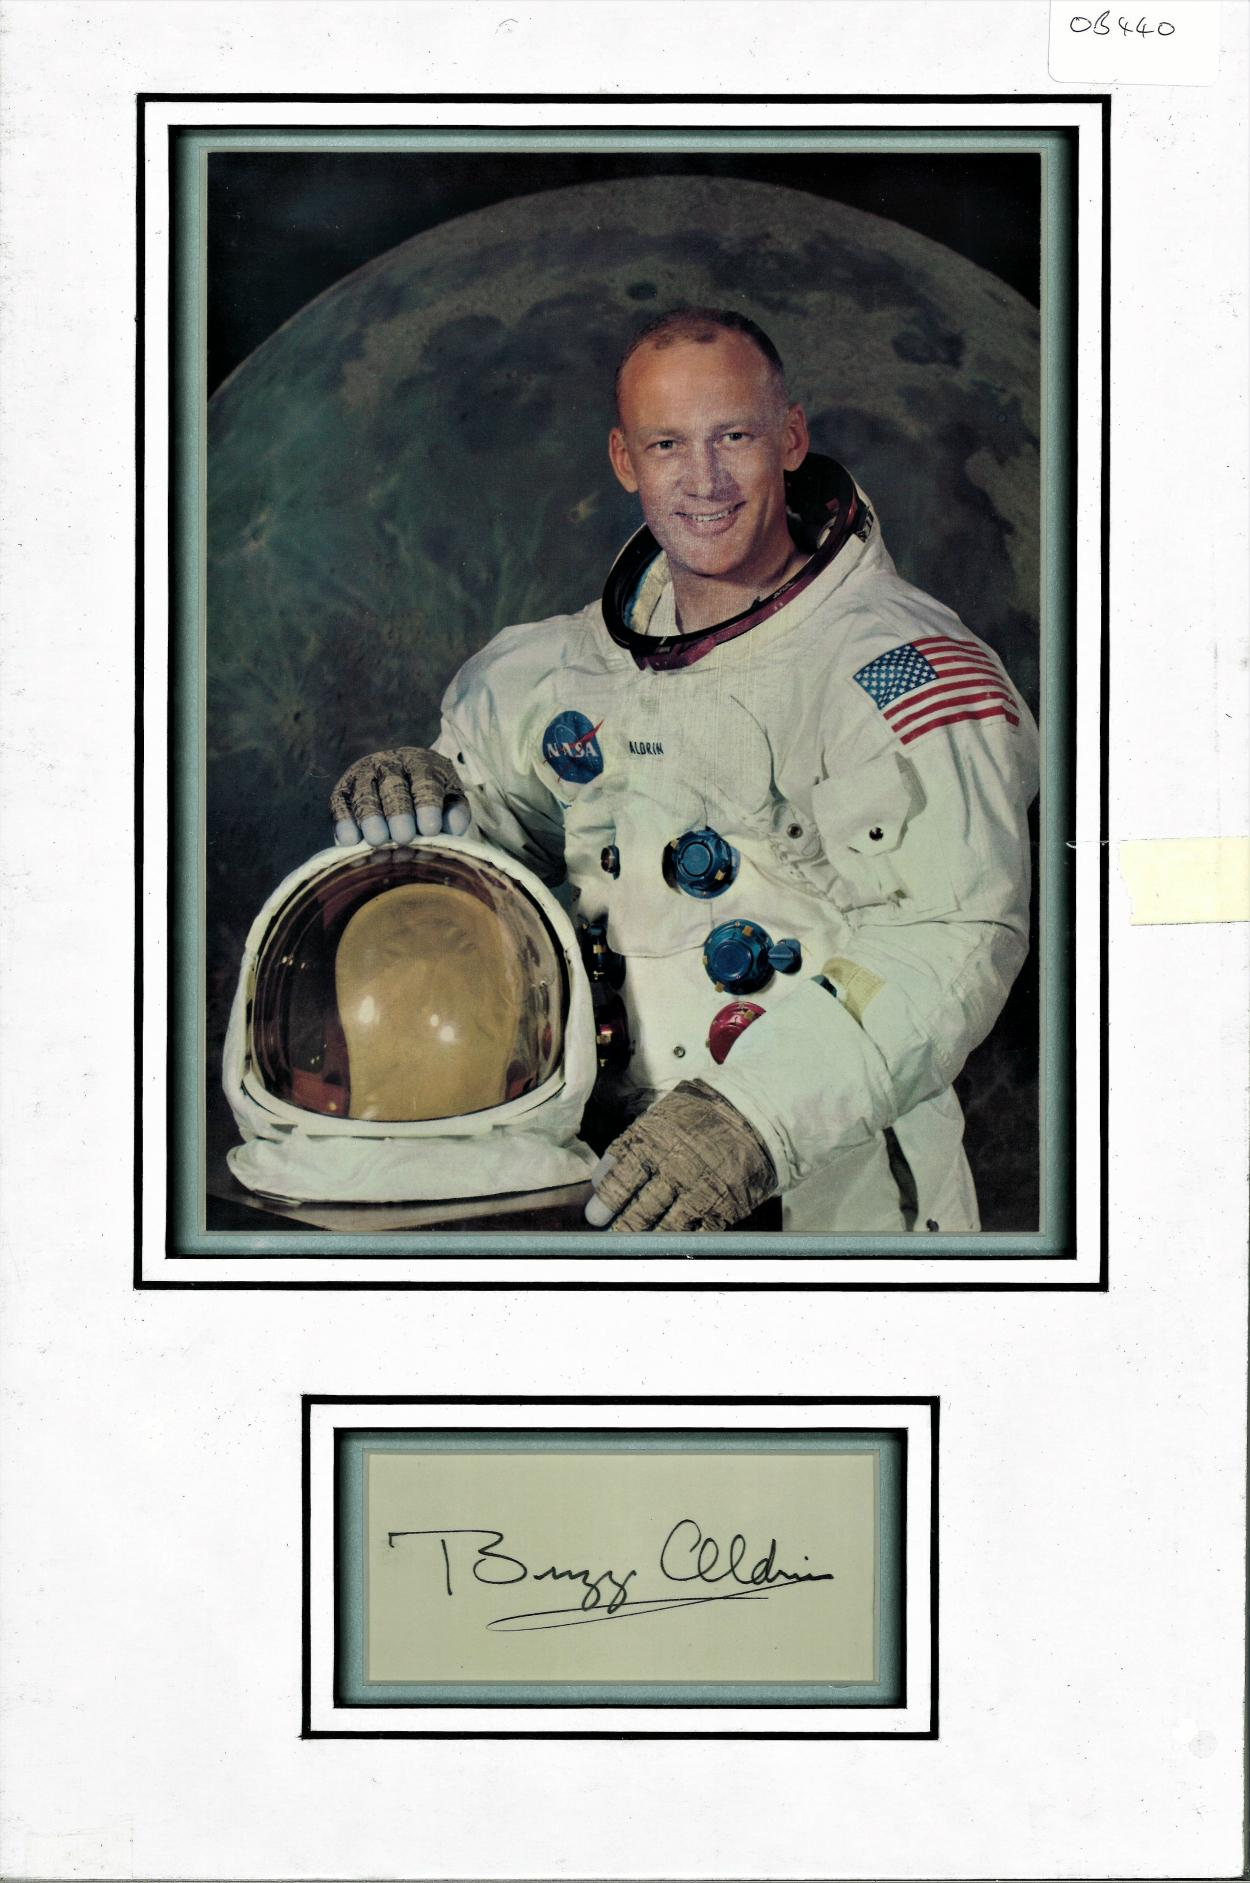 Lot 64 - Buzz Aldrin signed autograph presentation. High quality professionally mounted 17 x 11 inch